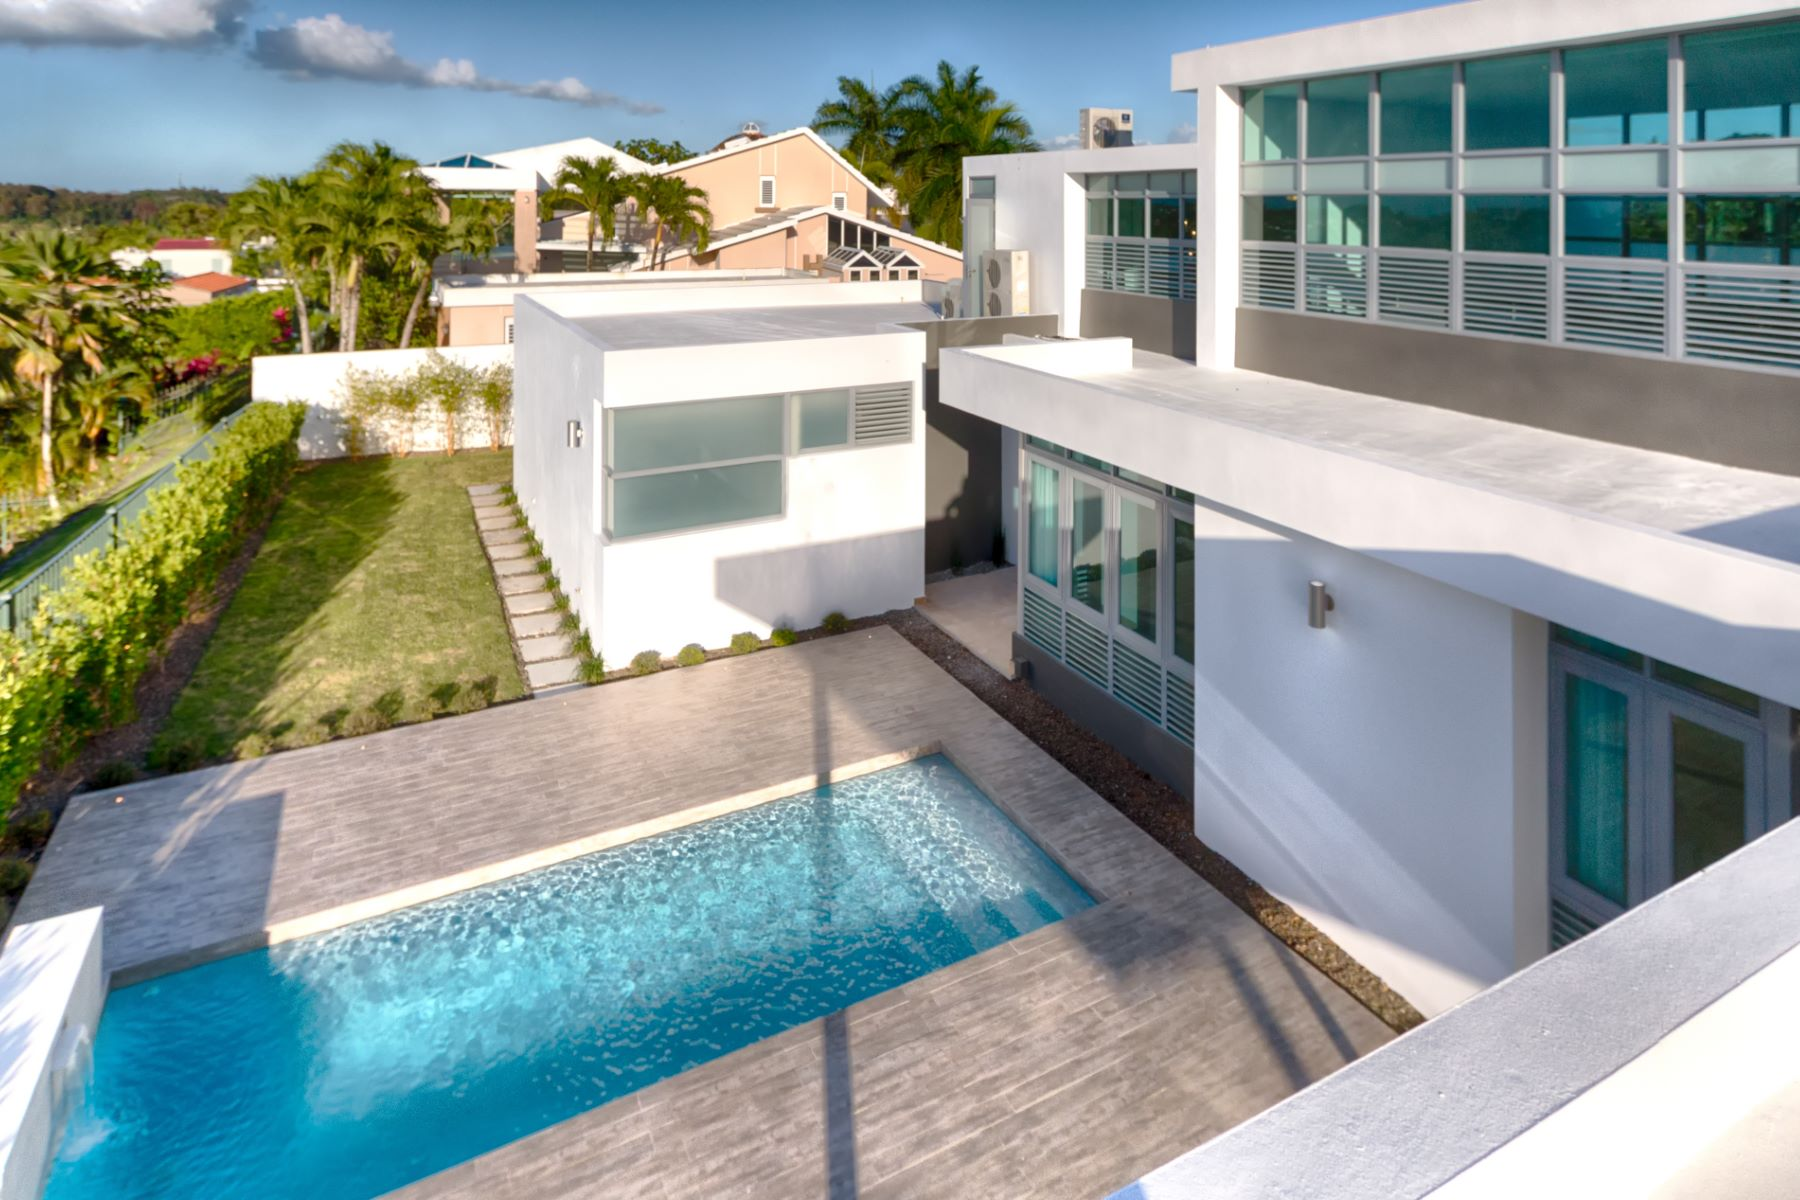 Additional photo for property listing at For Rent Stunning Architectural Estate 168 Calle Tortolla Montehiedra San Juan, Puerto Rico 00926 Porto Rico